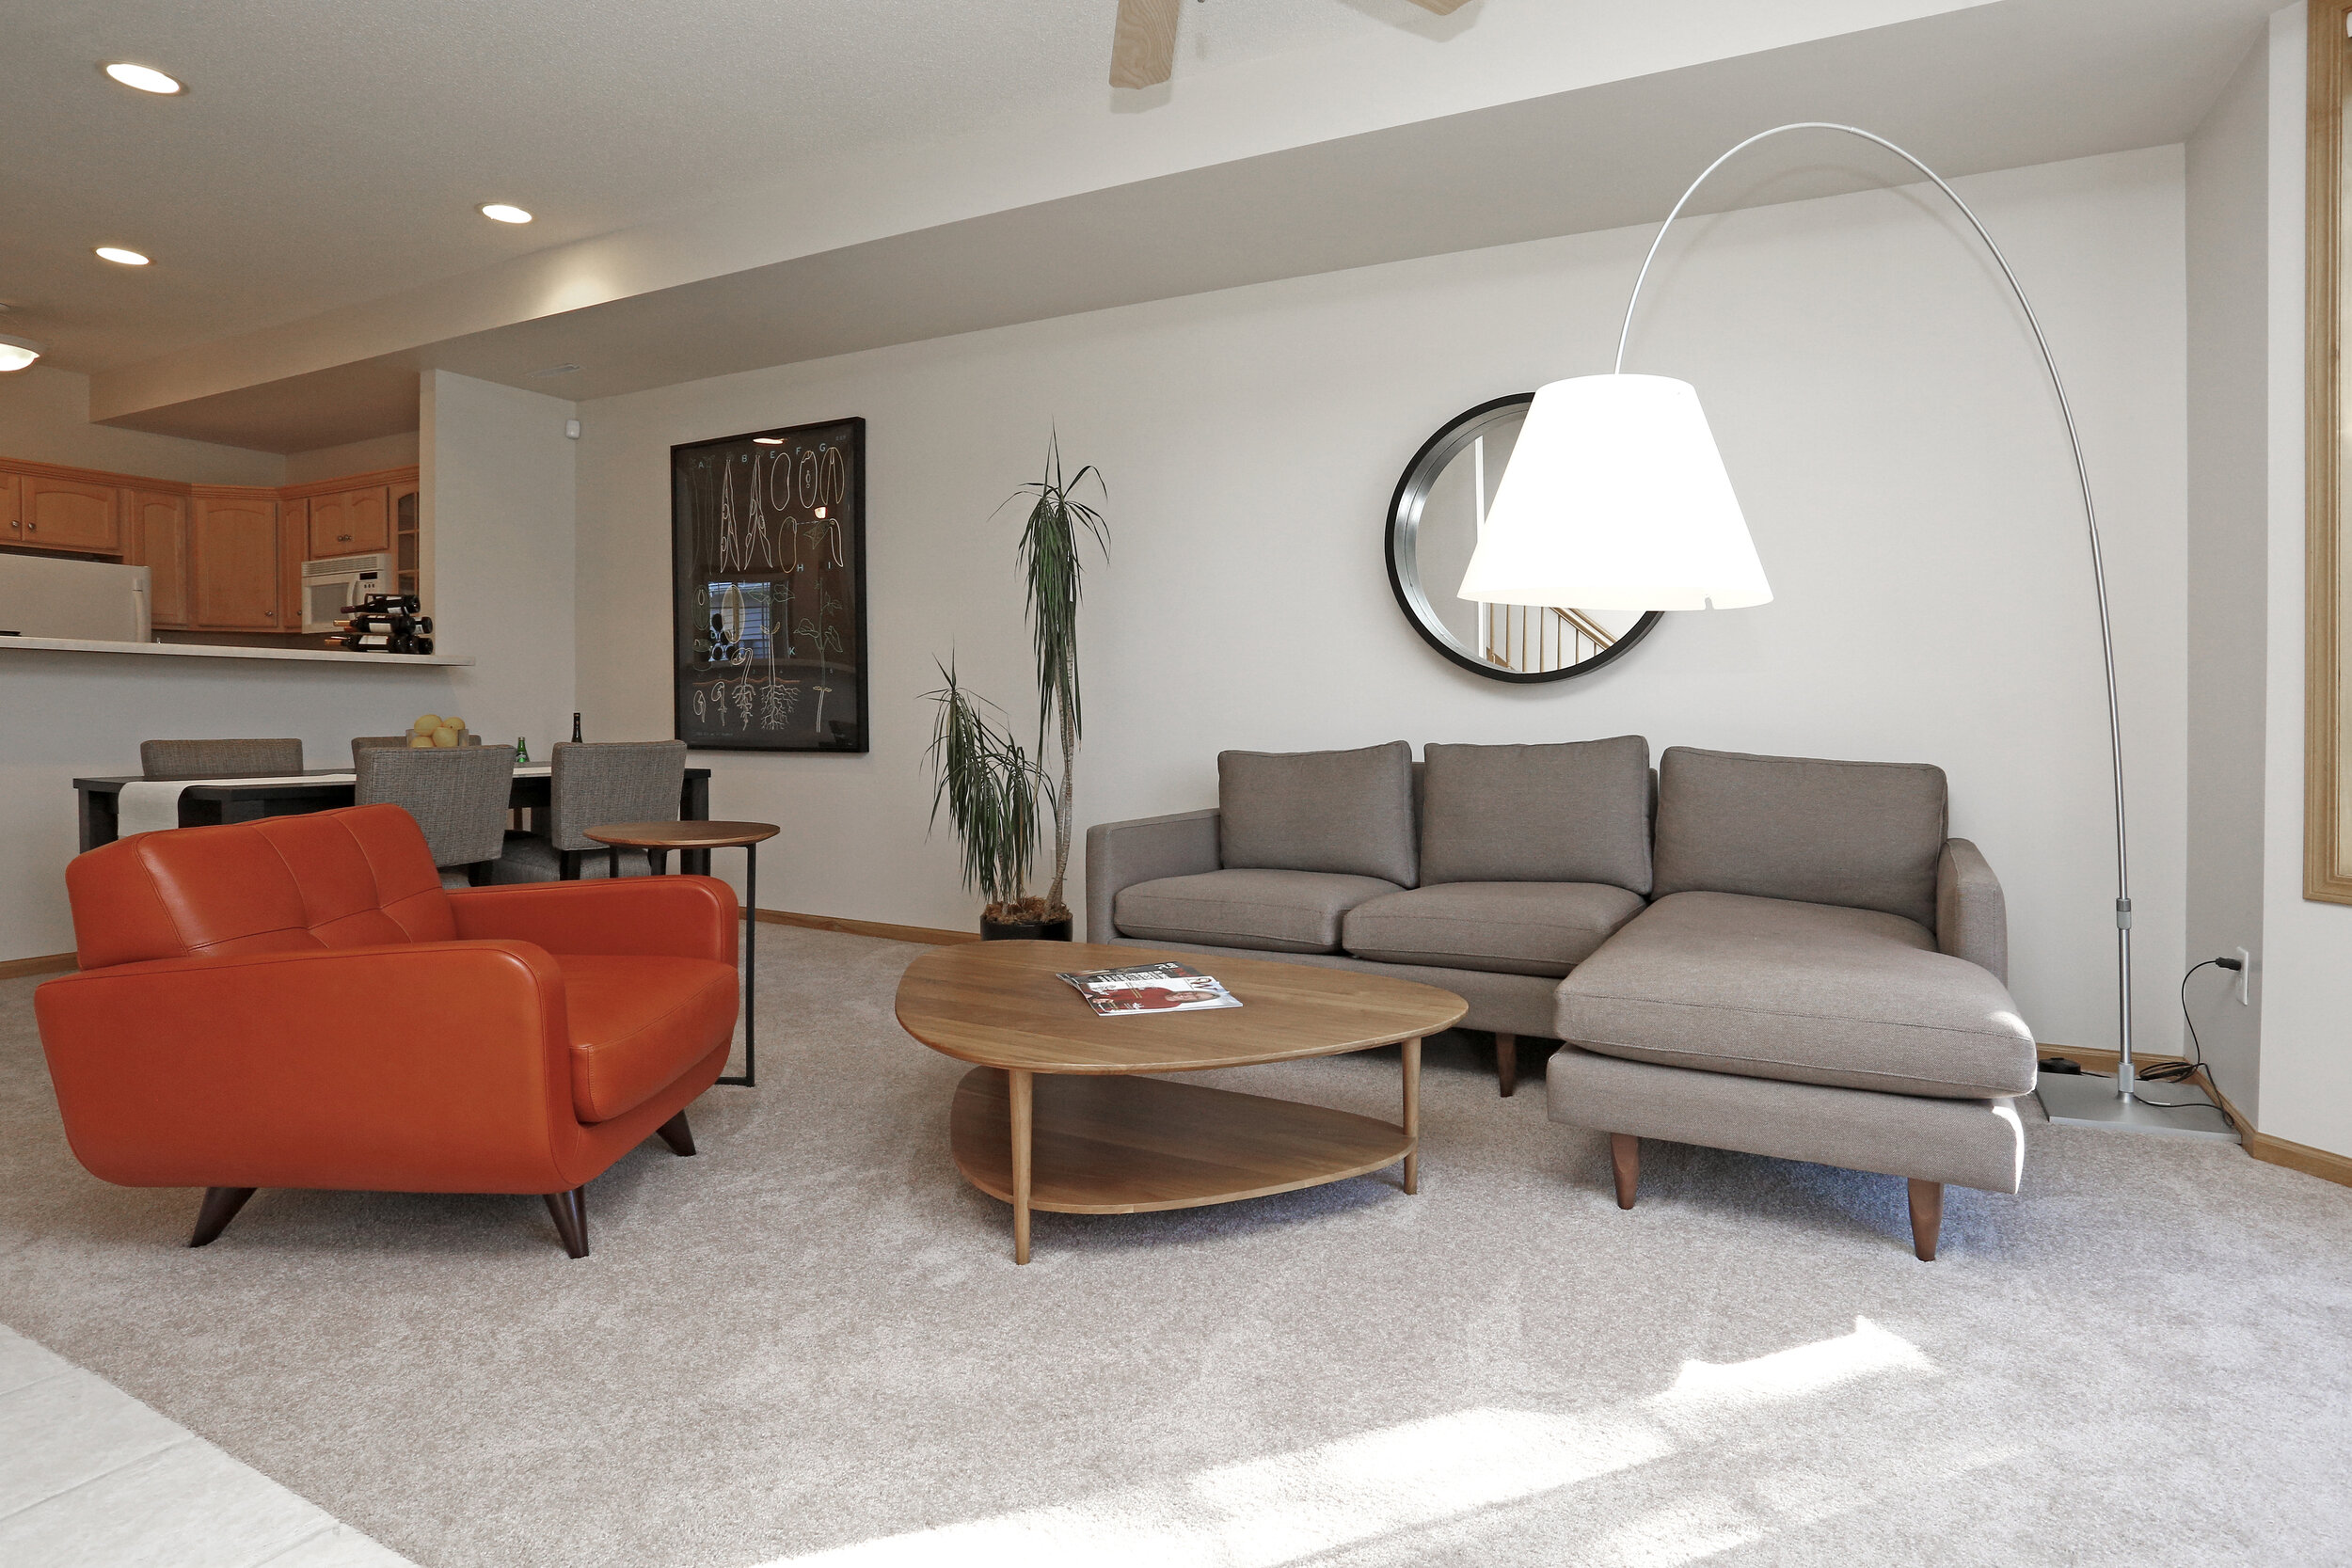 A Great Space for Entertaining Friends & Family